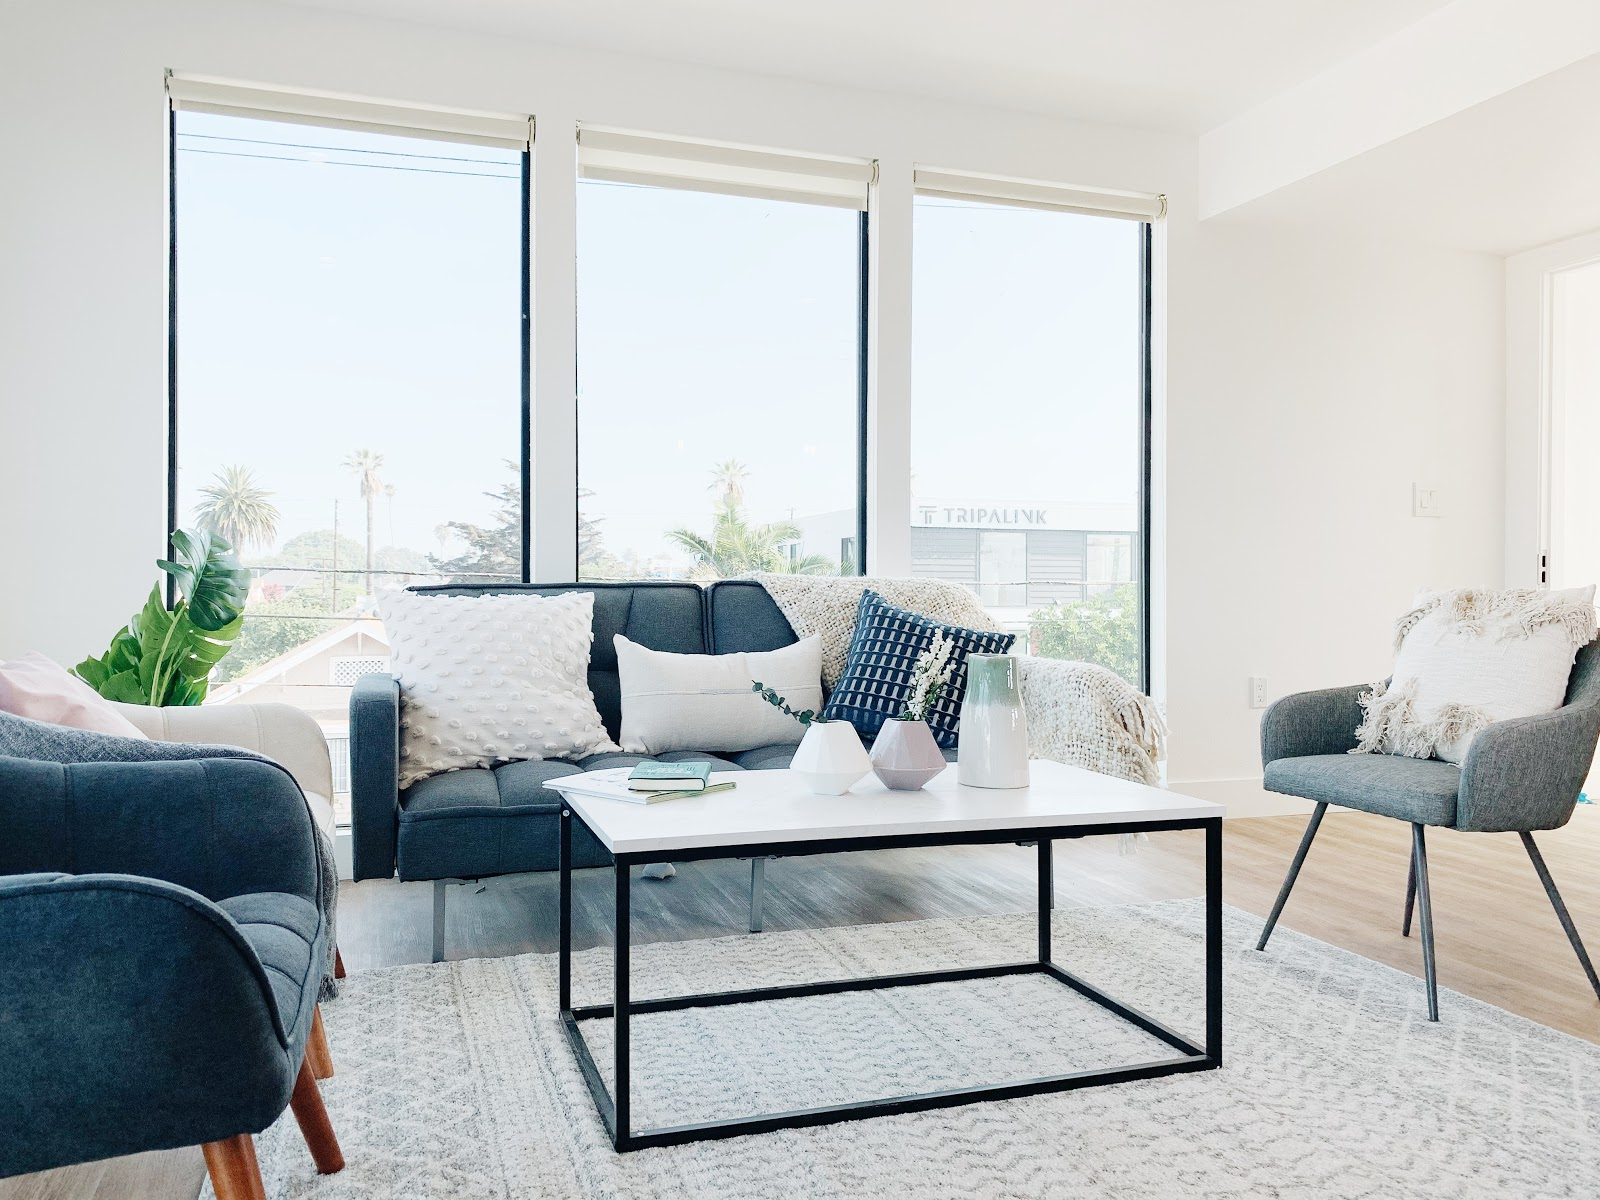 Tripalink living room with beautiful view